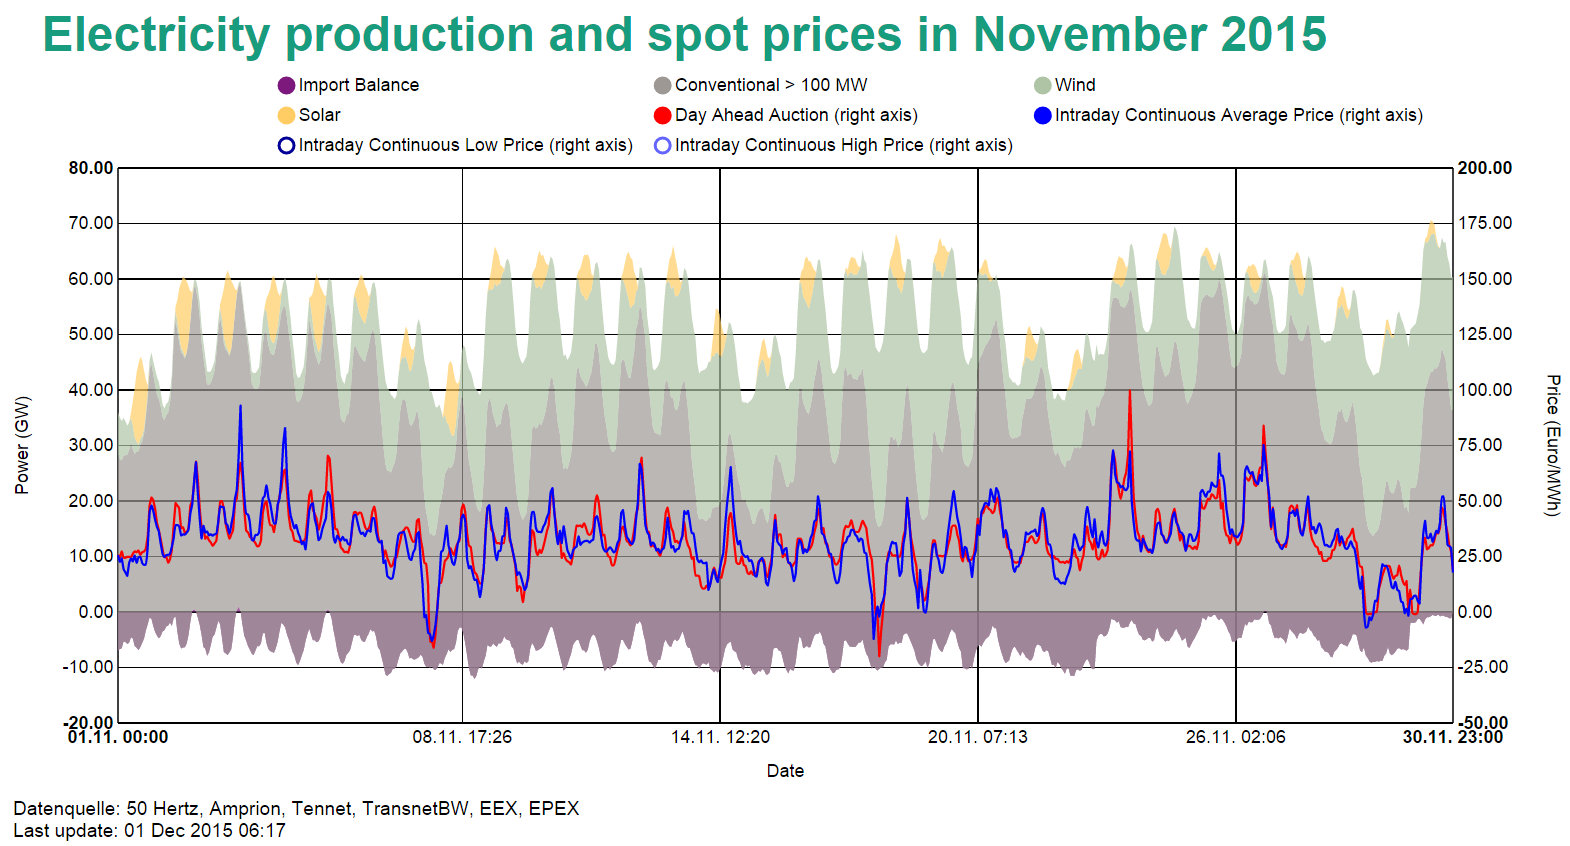 Electricity spot prices in Germany in November 2015